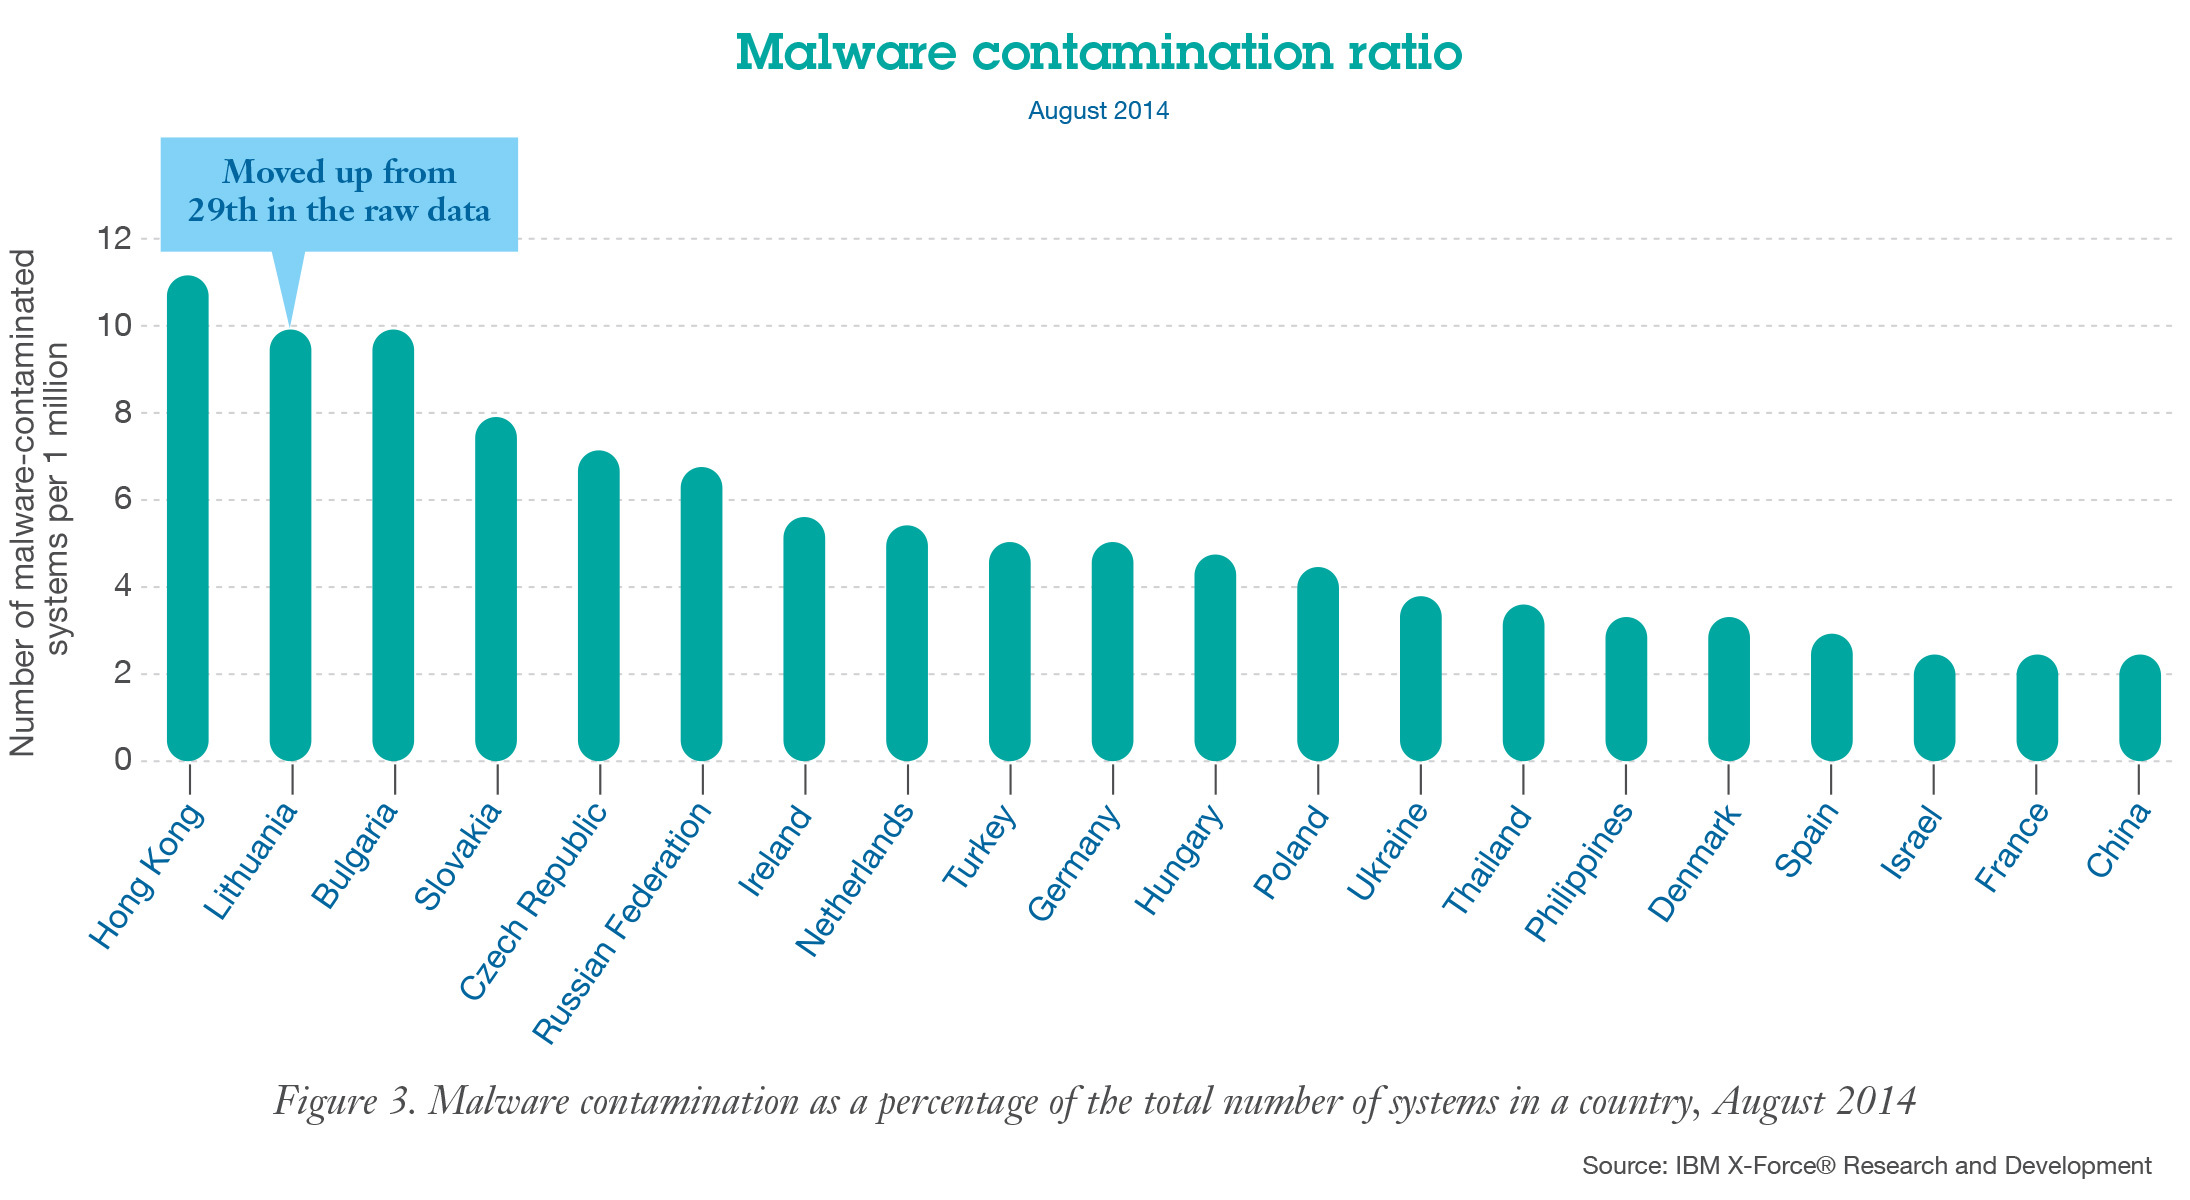 Malware contamination ratio as a percentage of the total number of systems in a country, August 2014